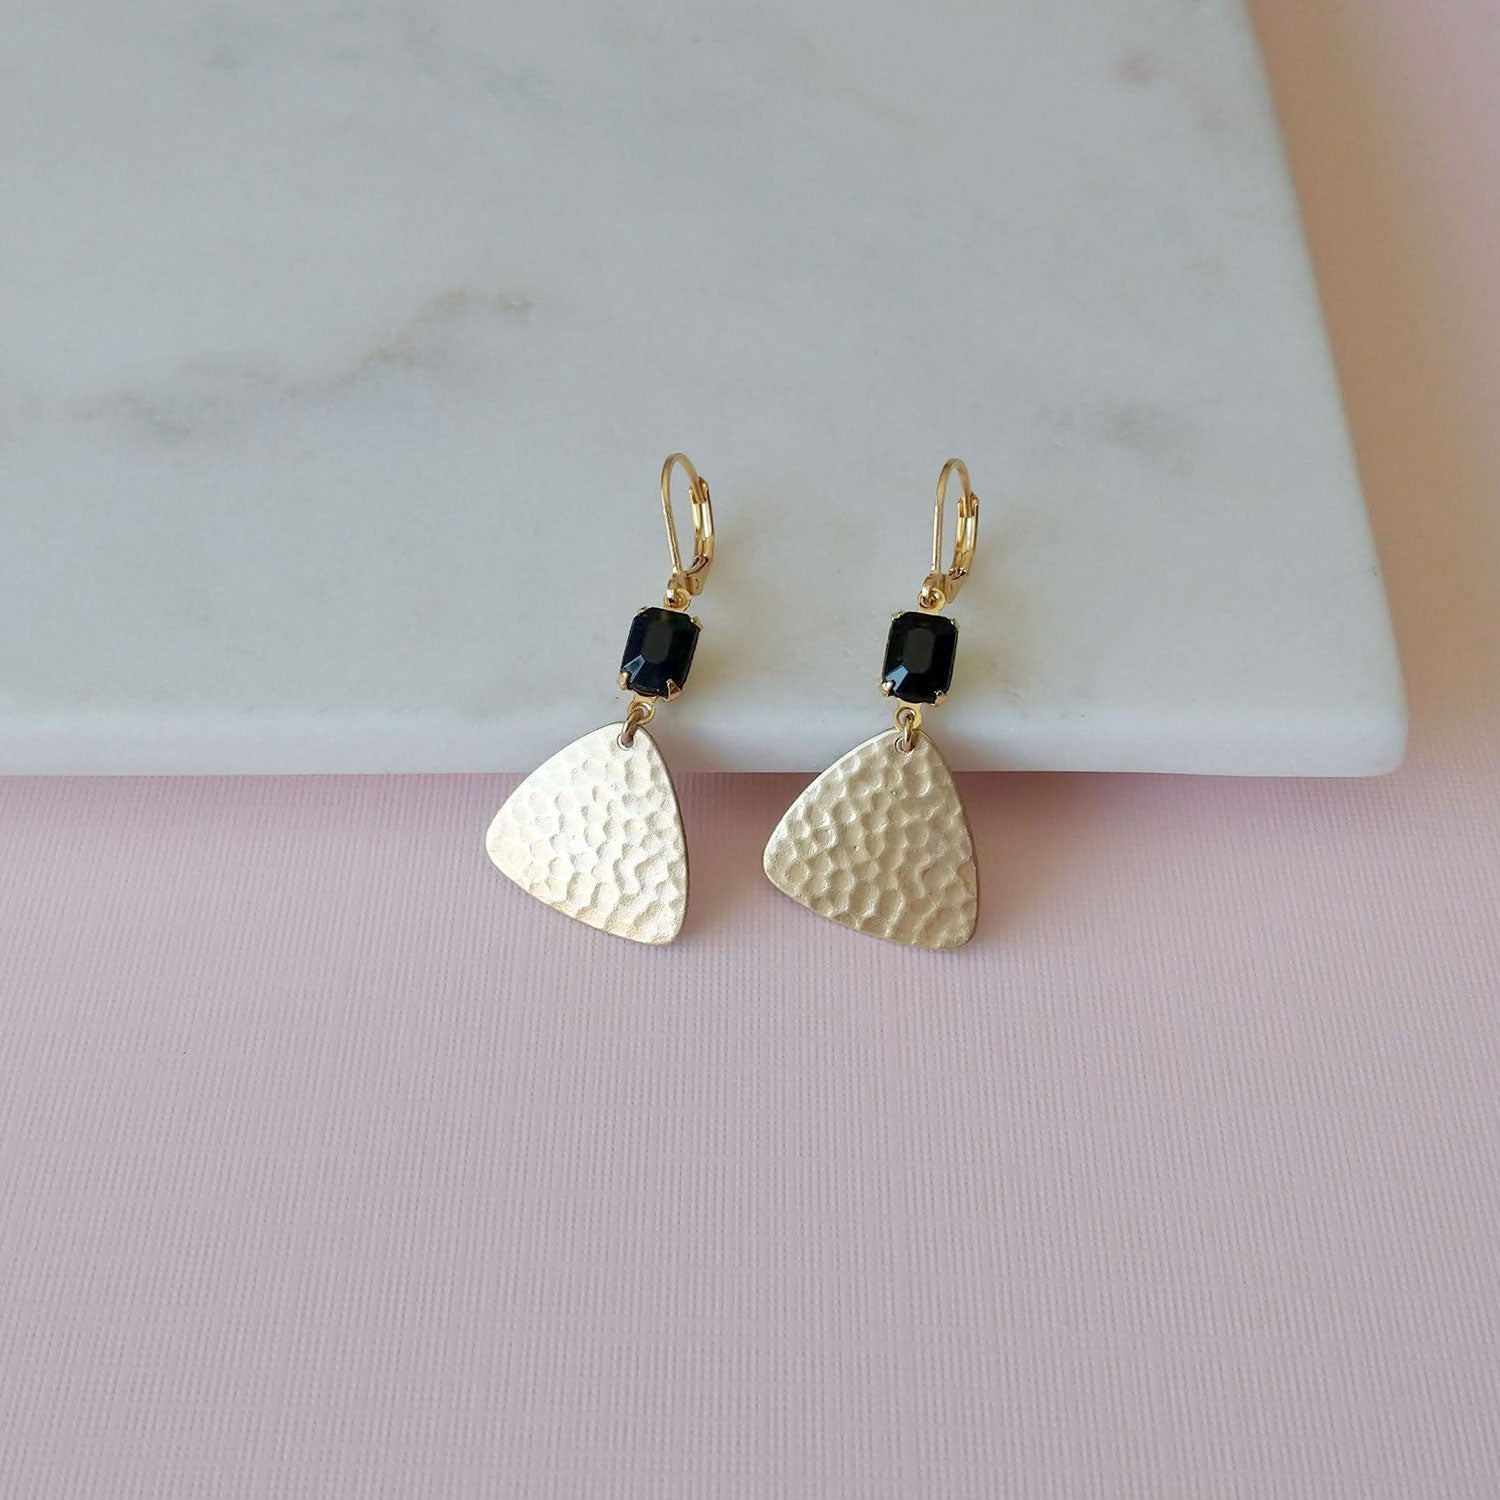 Golden fan earrings with black stones